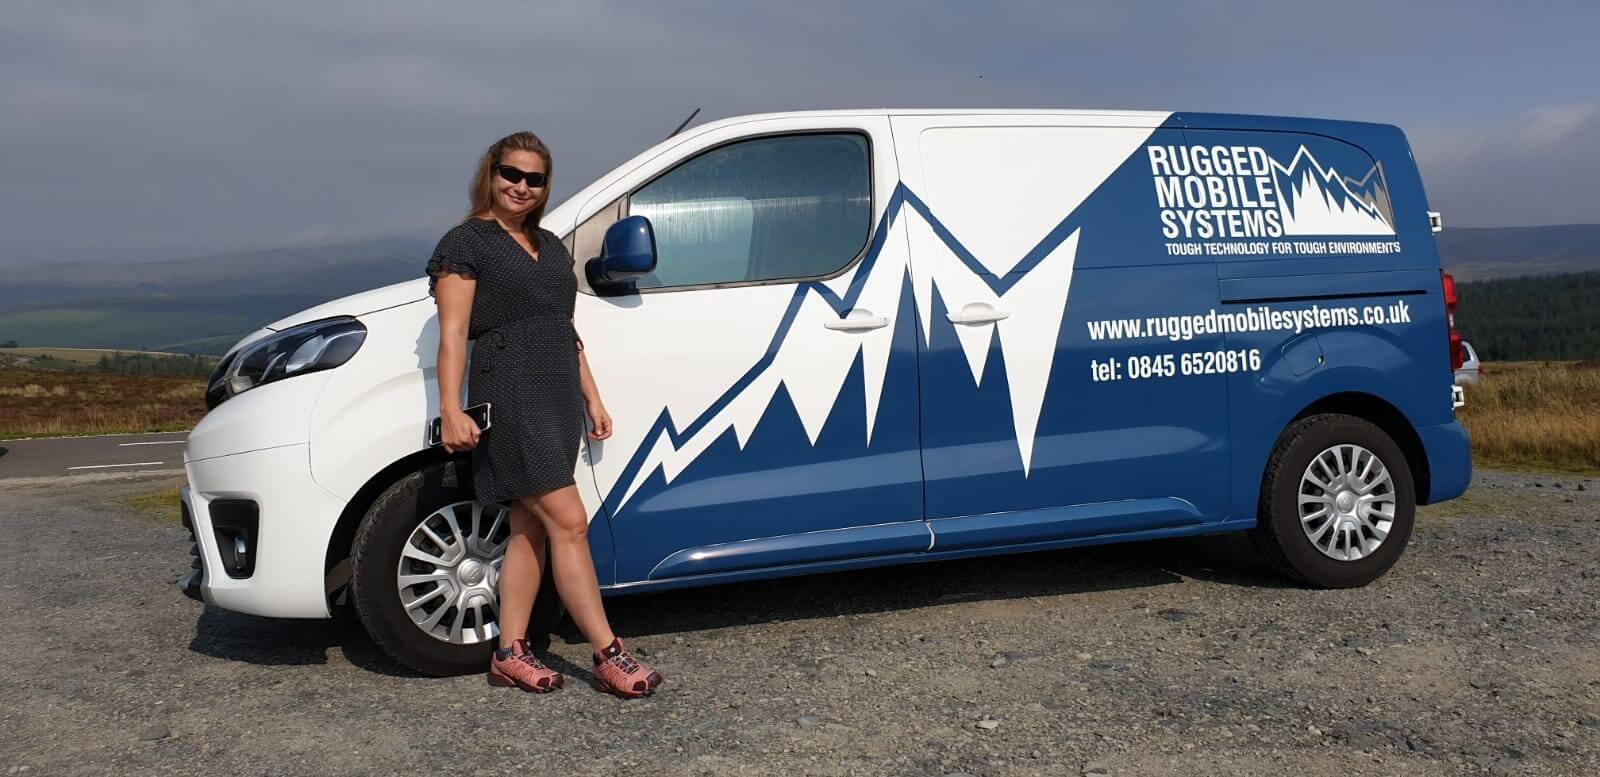 RUGGED MOBILE Systems new van is on the road!